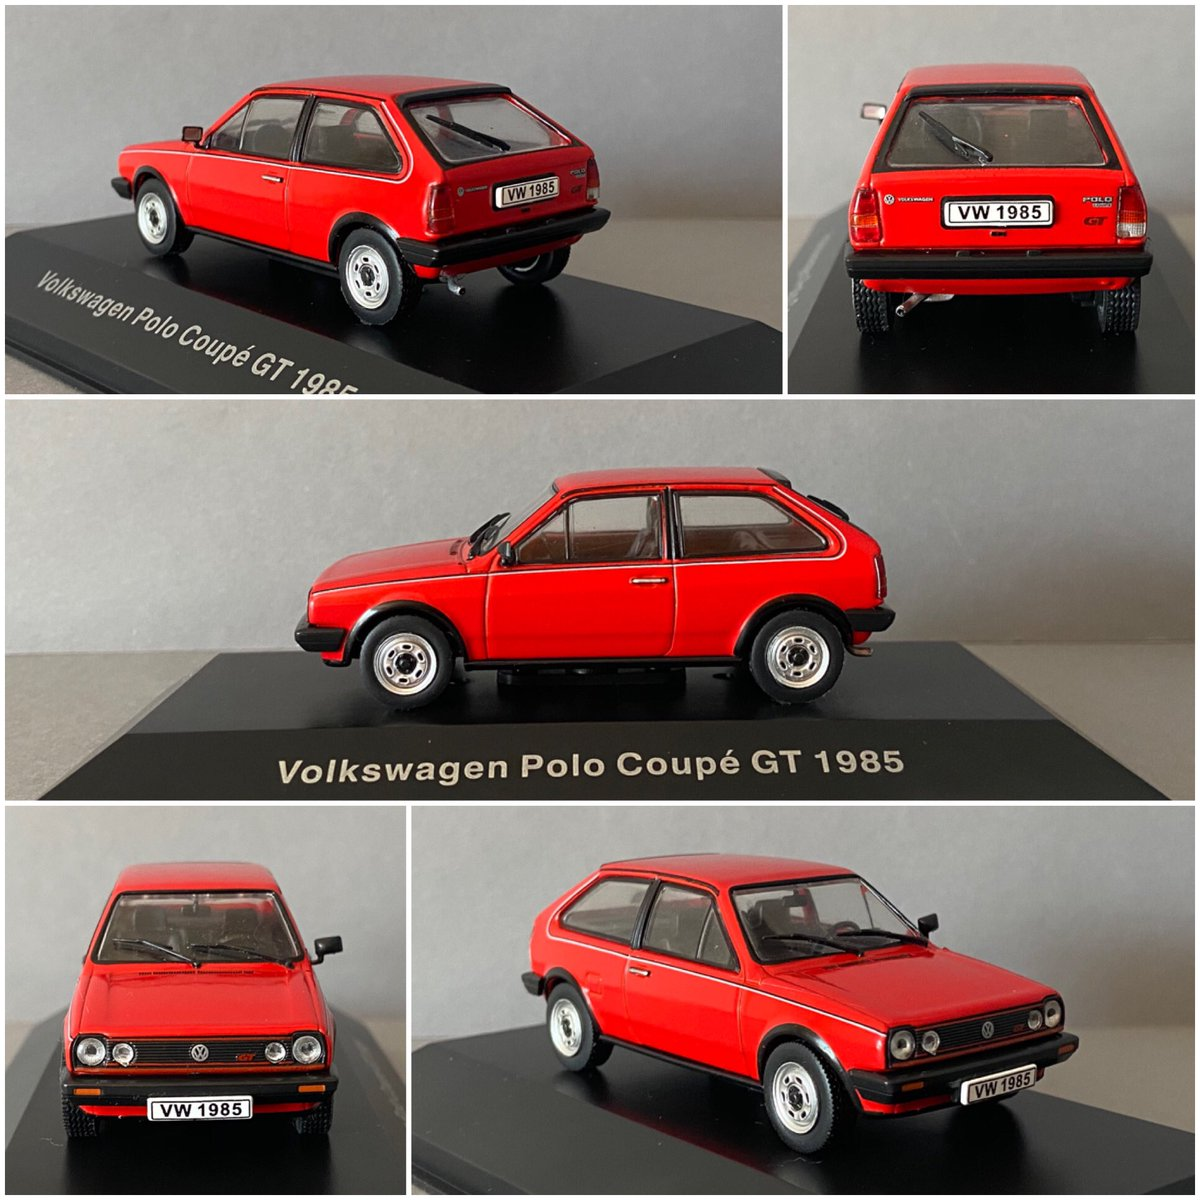 Volkswagen Polo Coupé GT (1985)  #vw #autostadt #volkswagen #modelcars #deagostini #scale143 #miniatur #vwpolo #polocoupe #g40 #polo86c #86c #oldtimers #carspotters #caroftheday #classiccaroftheday #automotive #carphotography #wirbleibenzuhause - https://www.instagram.com/p/CA3Dsq_JvwL/pic.twitter.com/0jegYGoF9O